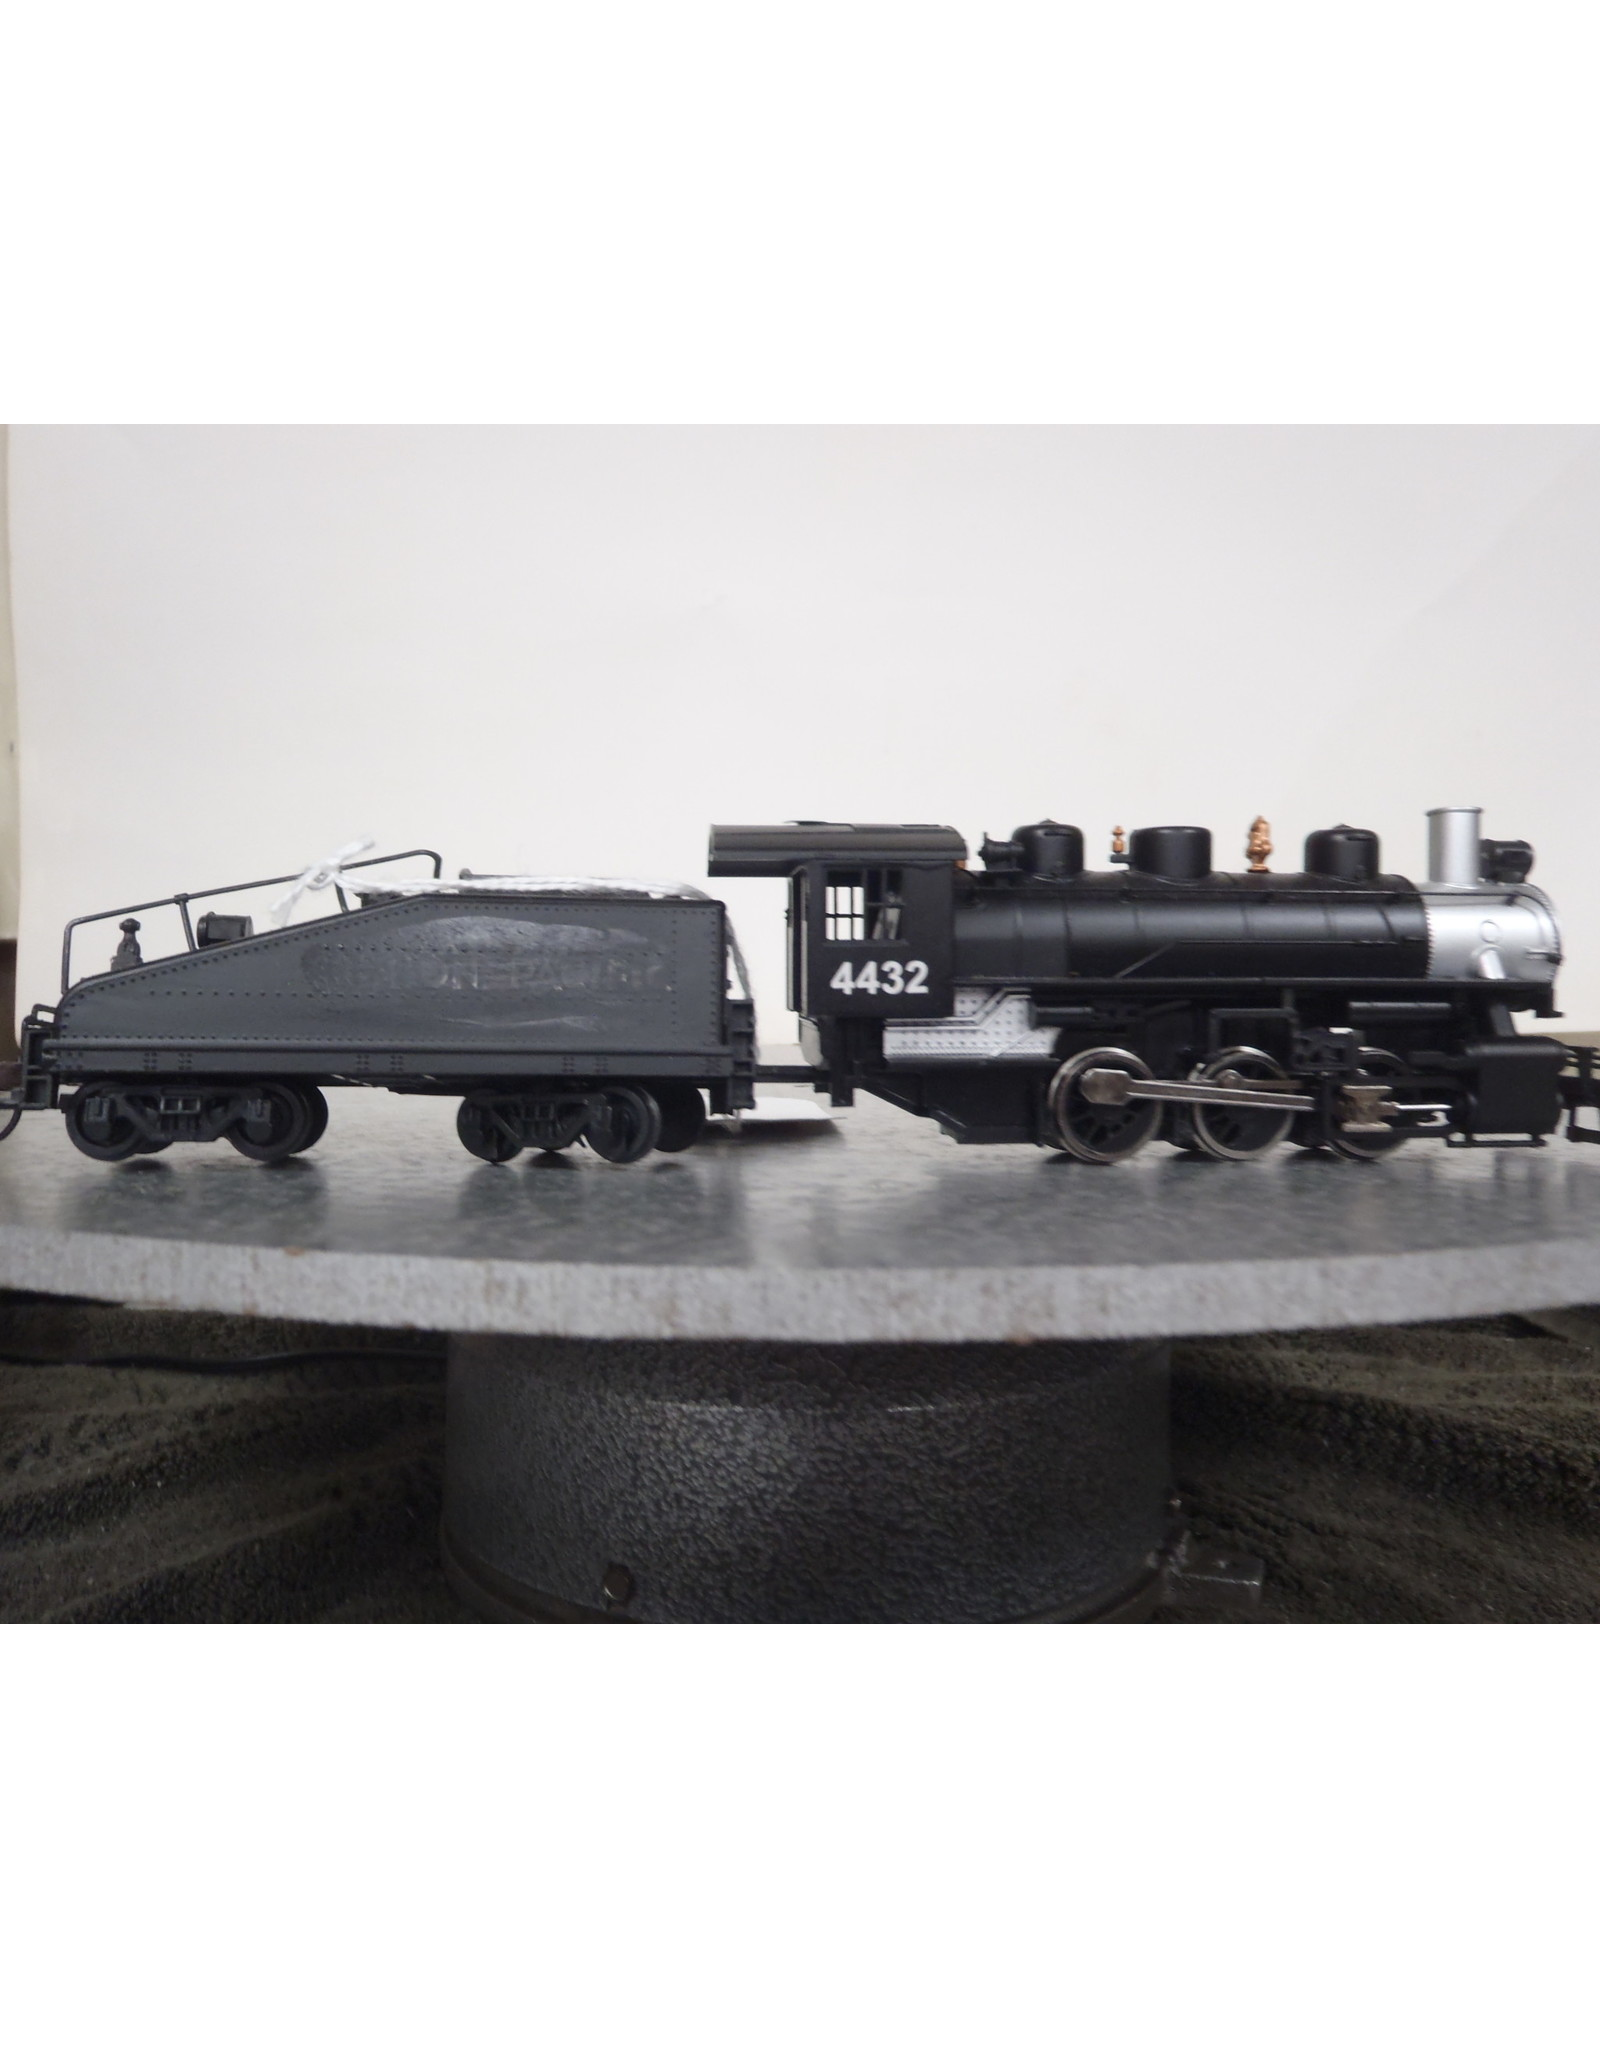 Bachmann USRA 0-6-0 Switcher w/Slope-Back Tender - Standard DC -- Union Pacific #4442 (black, silver)